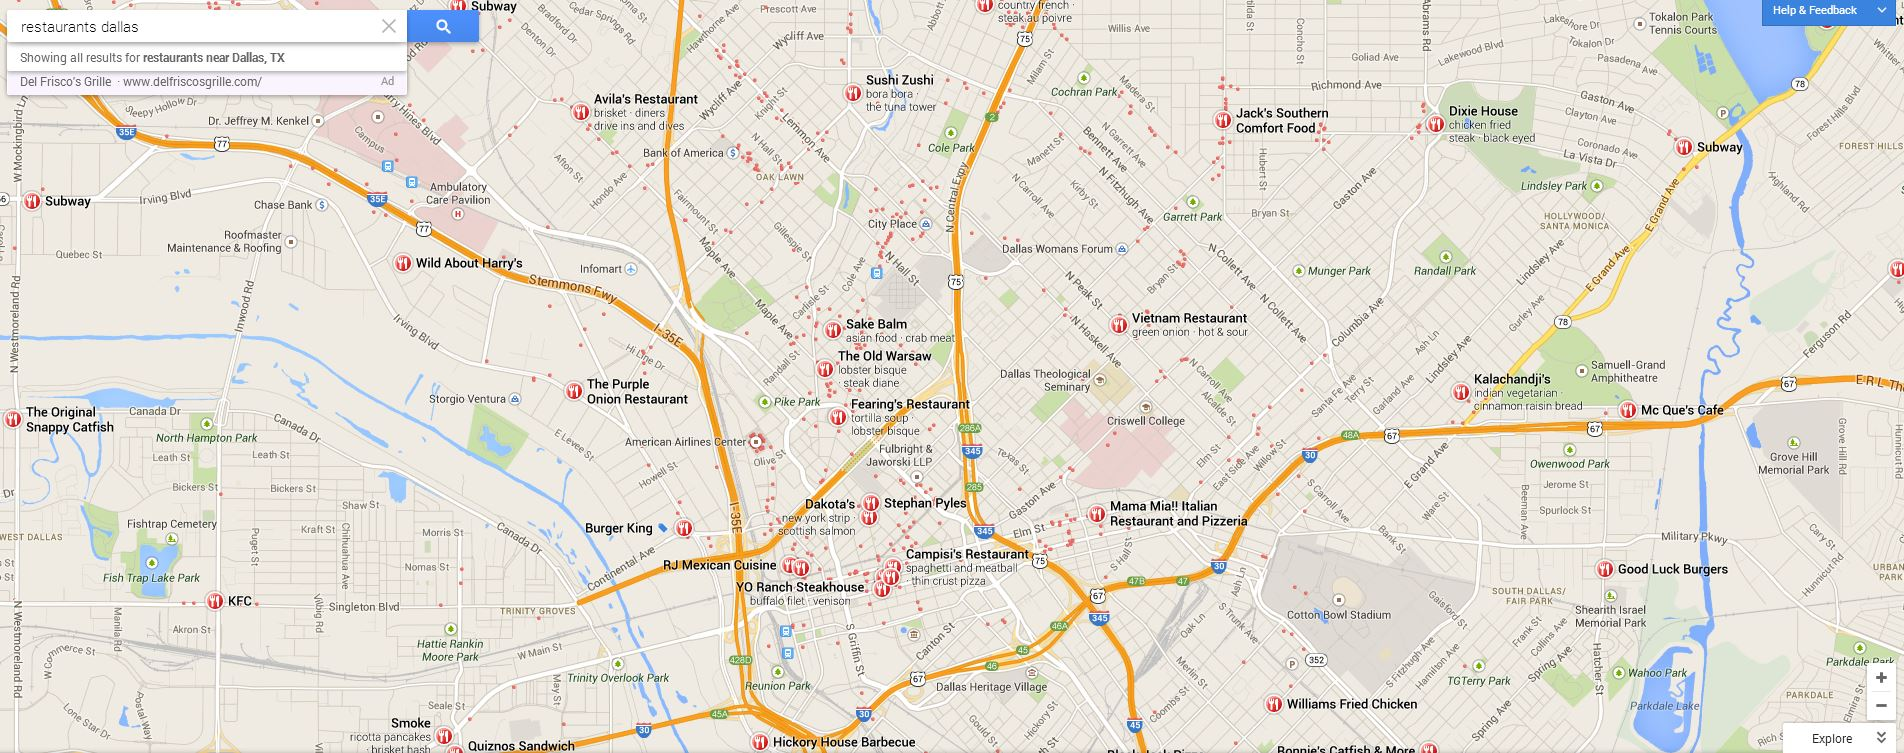 Google Maps-restaurants in Dallas